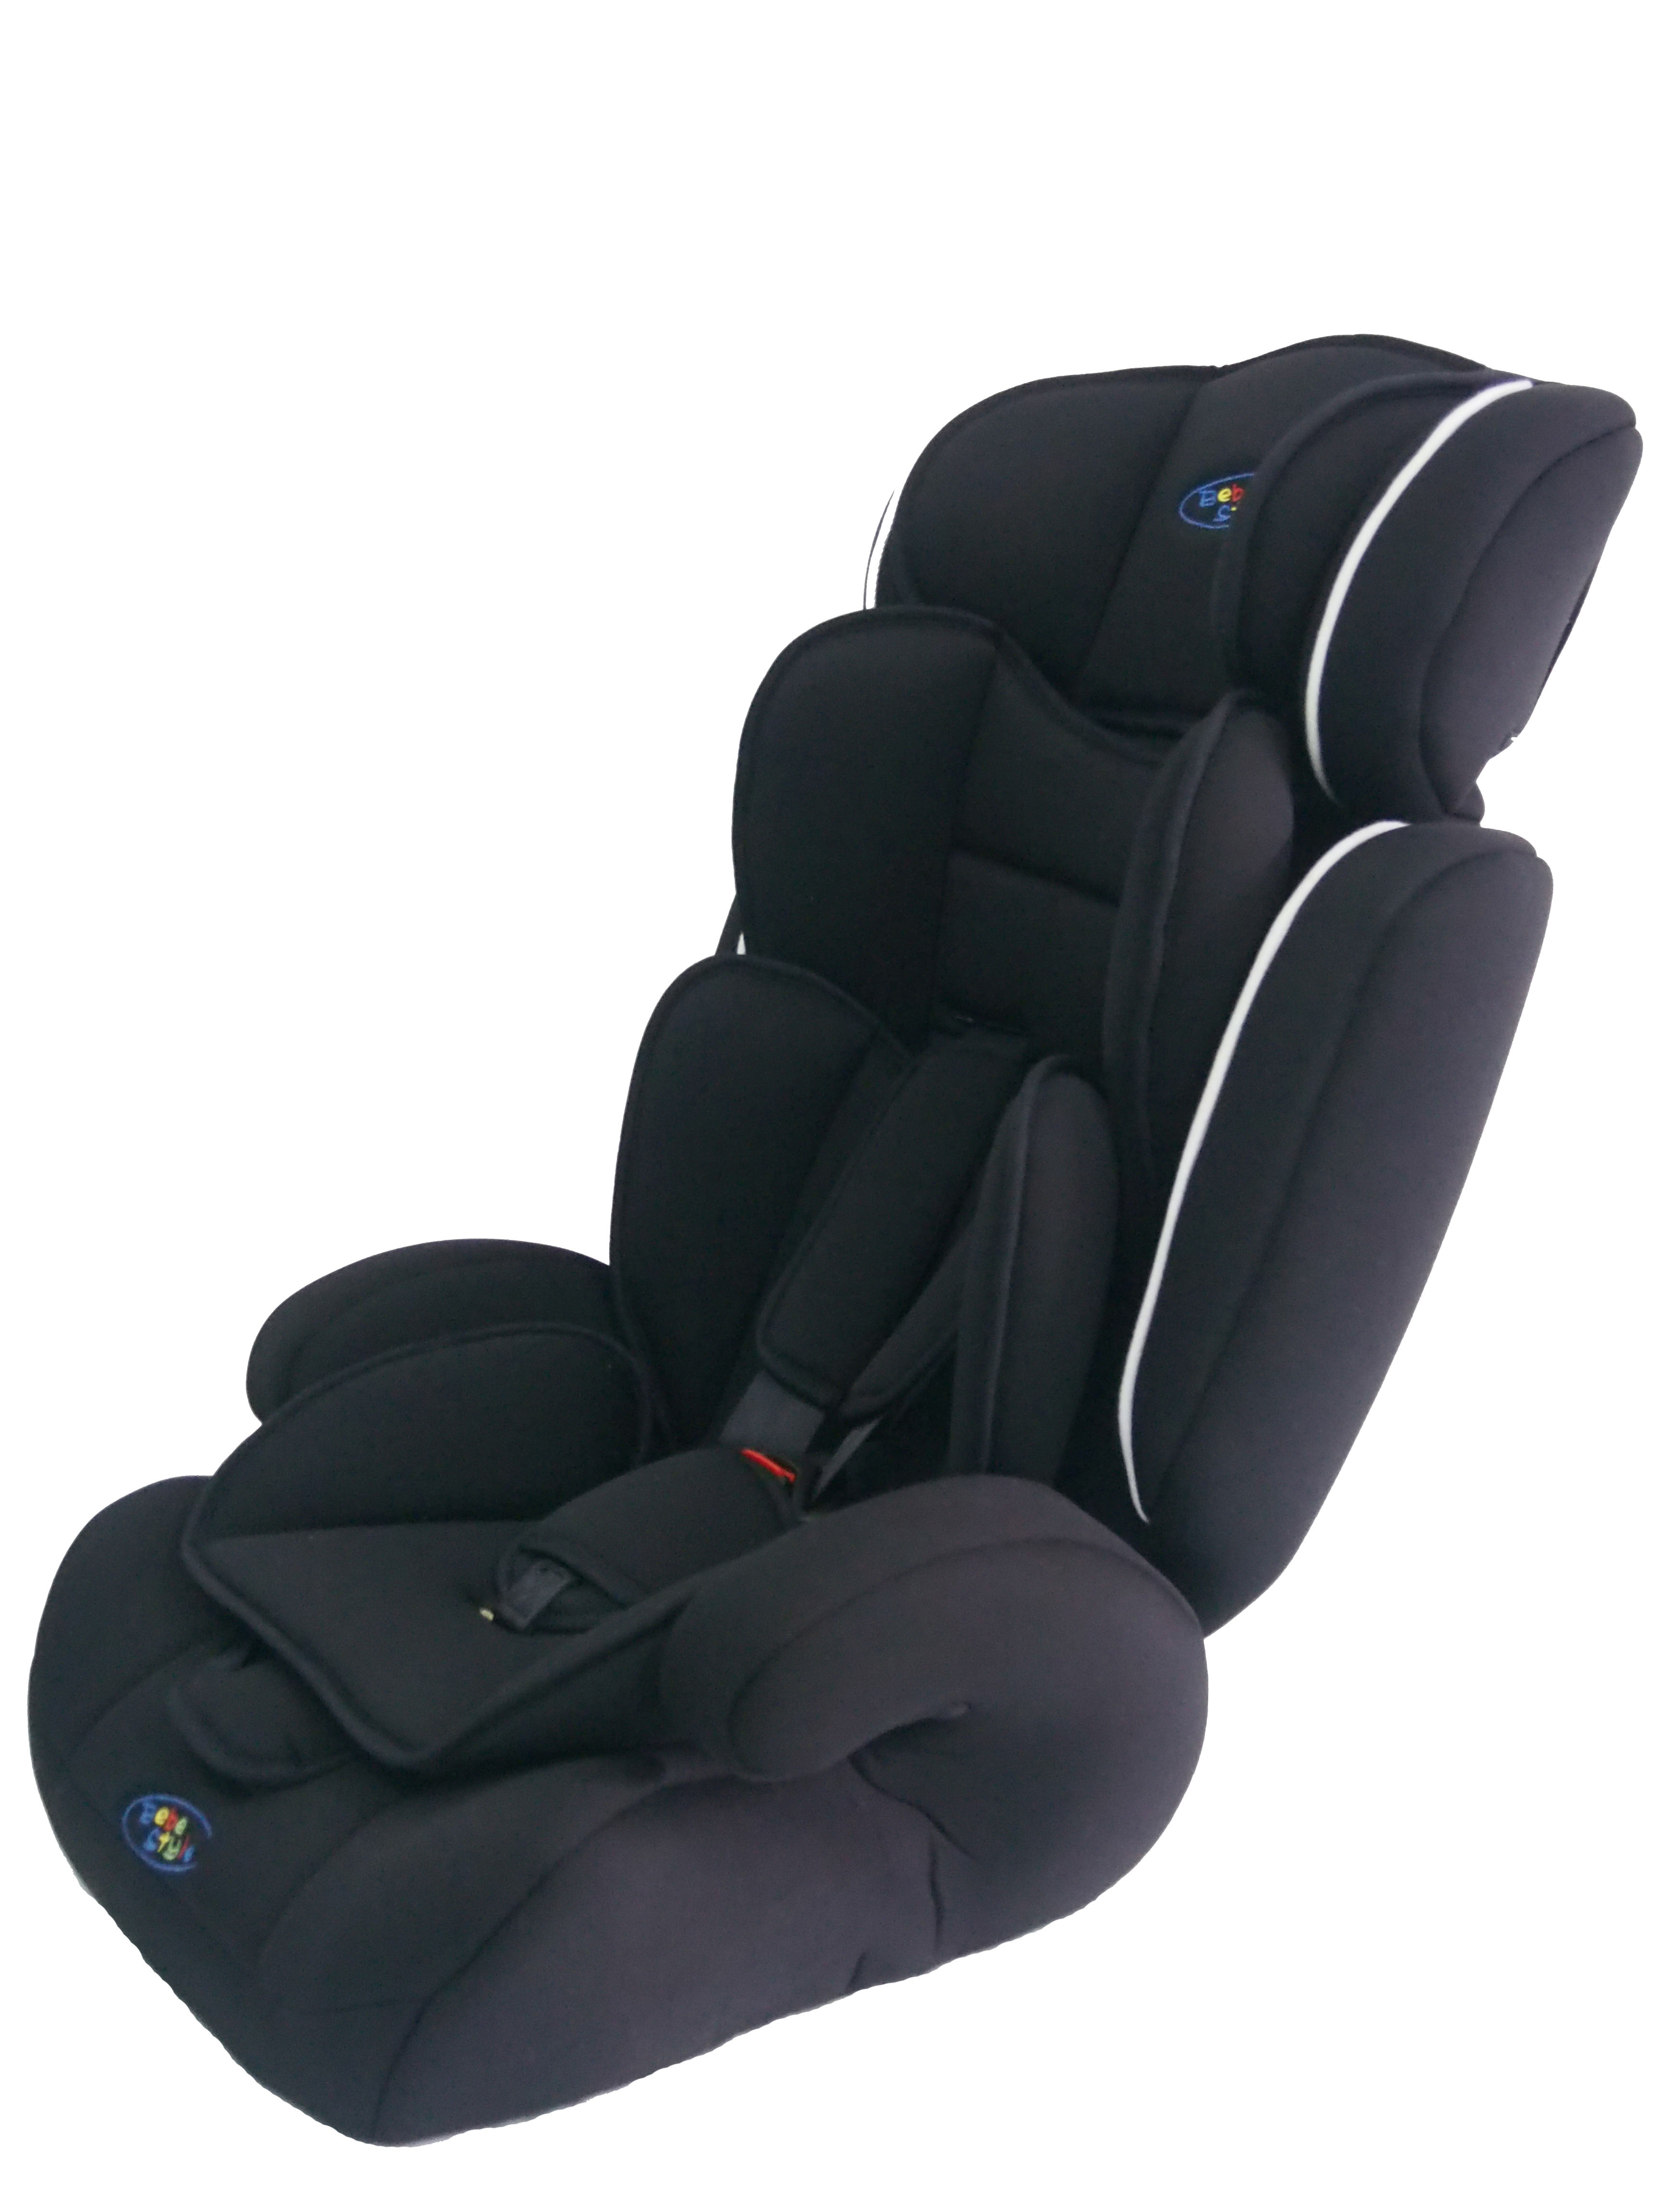 Bebe Style Child Car Seat Black Kiddy Products